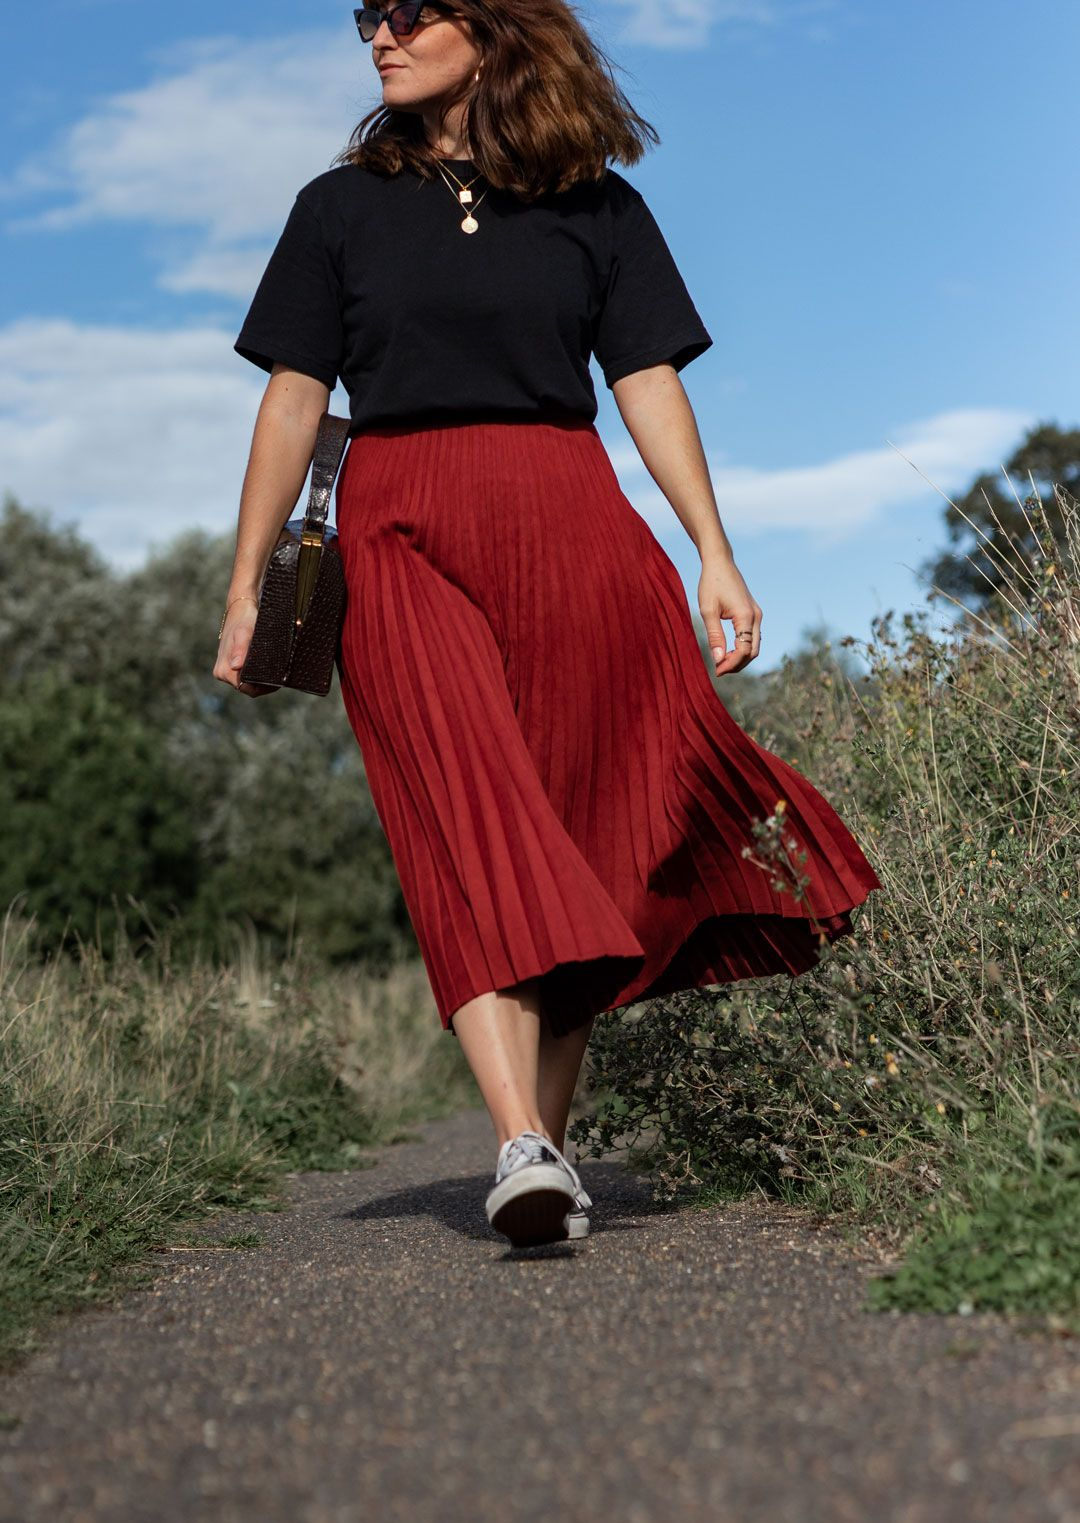 Autumn Lookbook and How to fight seasonal lethargy | #wellbeing #selfcare #selflove #wellness #mindfulness #mindfulliving |#casualstyle #streetstyle | #vans #oldskoolvans | #retrosunnies #cateyesunglasses #redsunglasses | #pleatedskirt #redskirt #midiskirt #falllook | #autumnlook | Saida Antolín #blacktee # cottontee #cottontshirt #boxytee #tshirt #casualchic #cincostore #cincopeople | #cambridgeblogger #cambridgefashion | How to transition your wardrobe to autumn